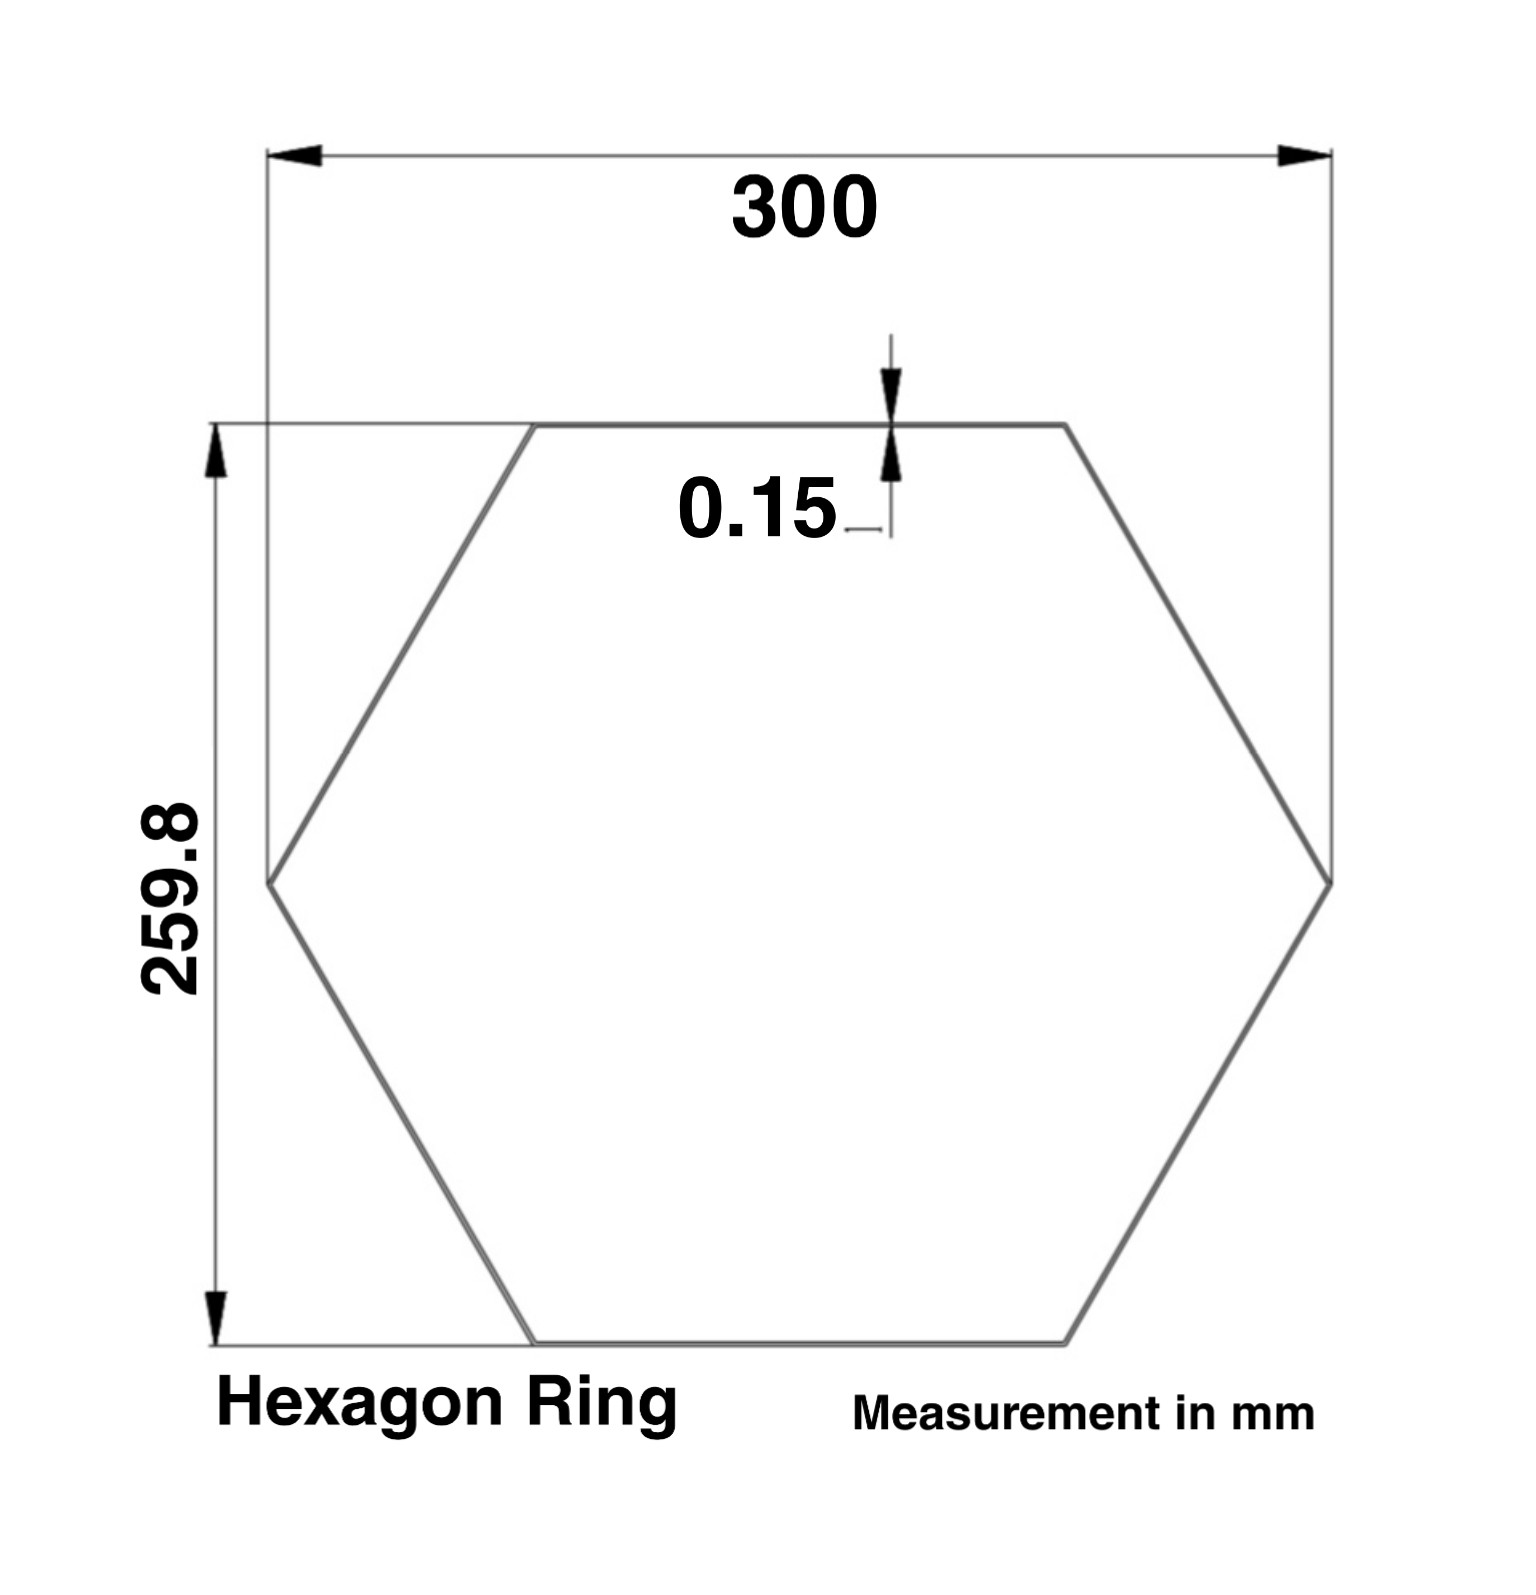 Introducing the New Hexagon ring – S A Y Brothers Building System